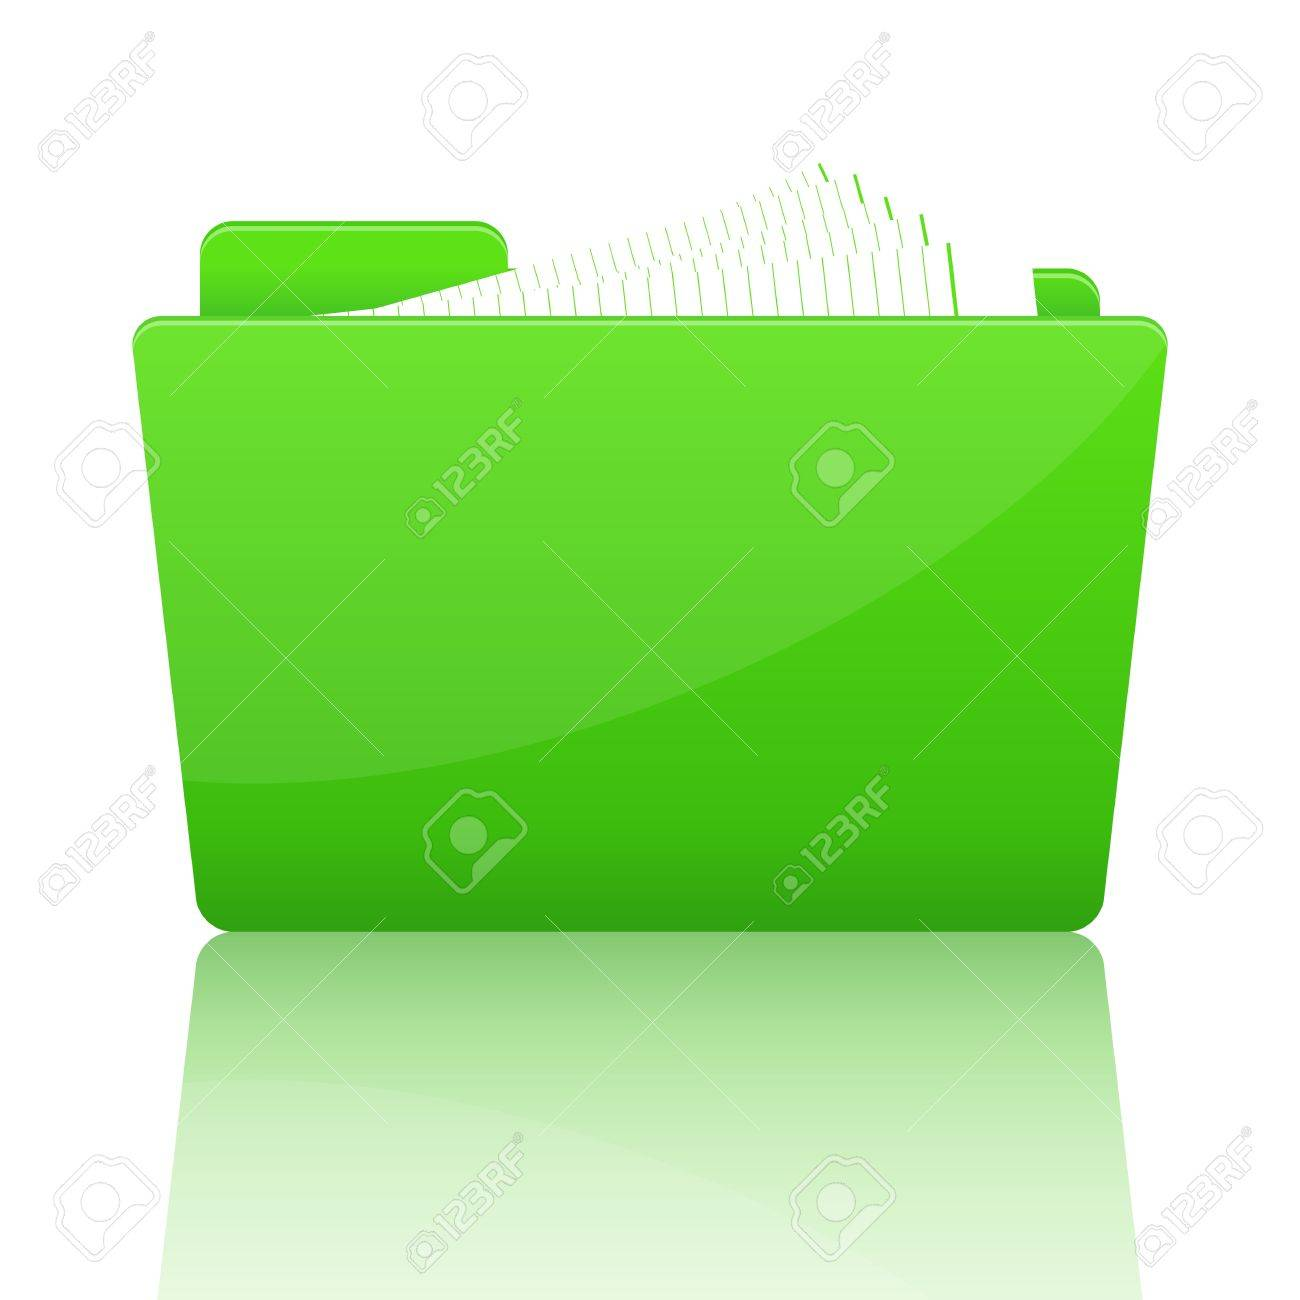 Green file folder with paper, vector illustration Stock Vector - 18989990